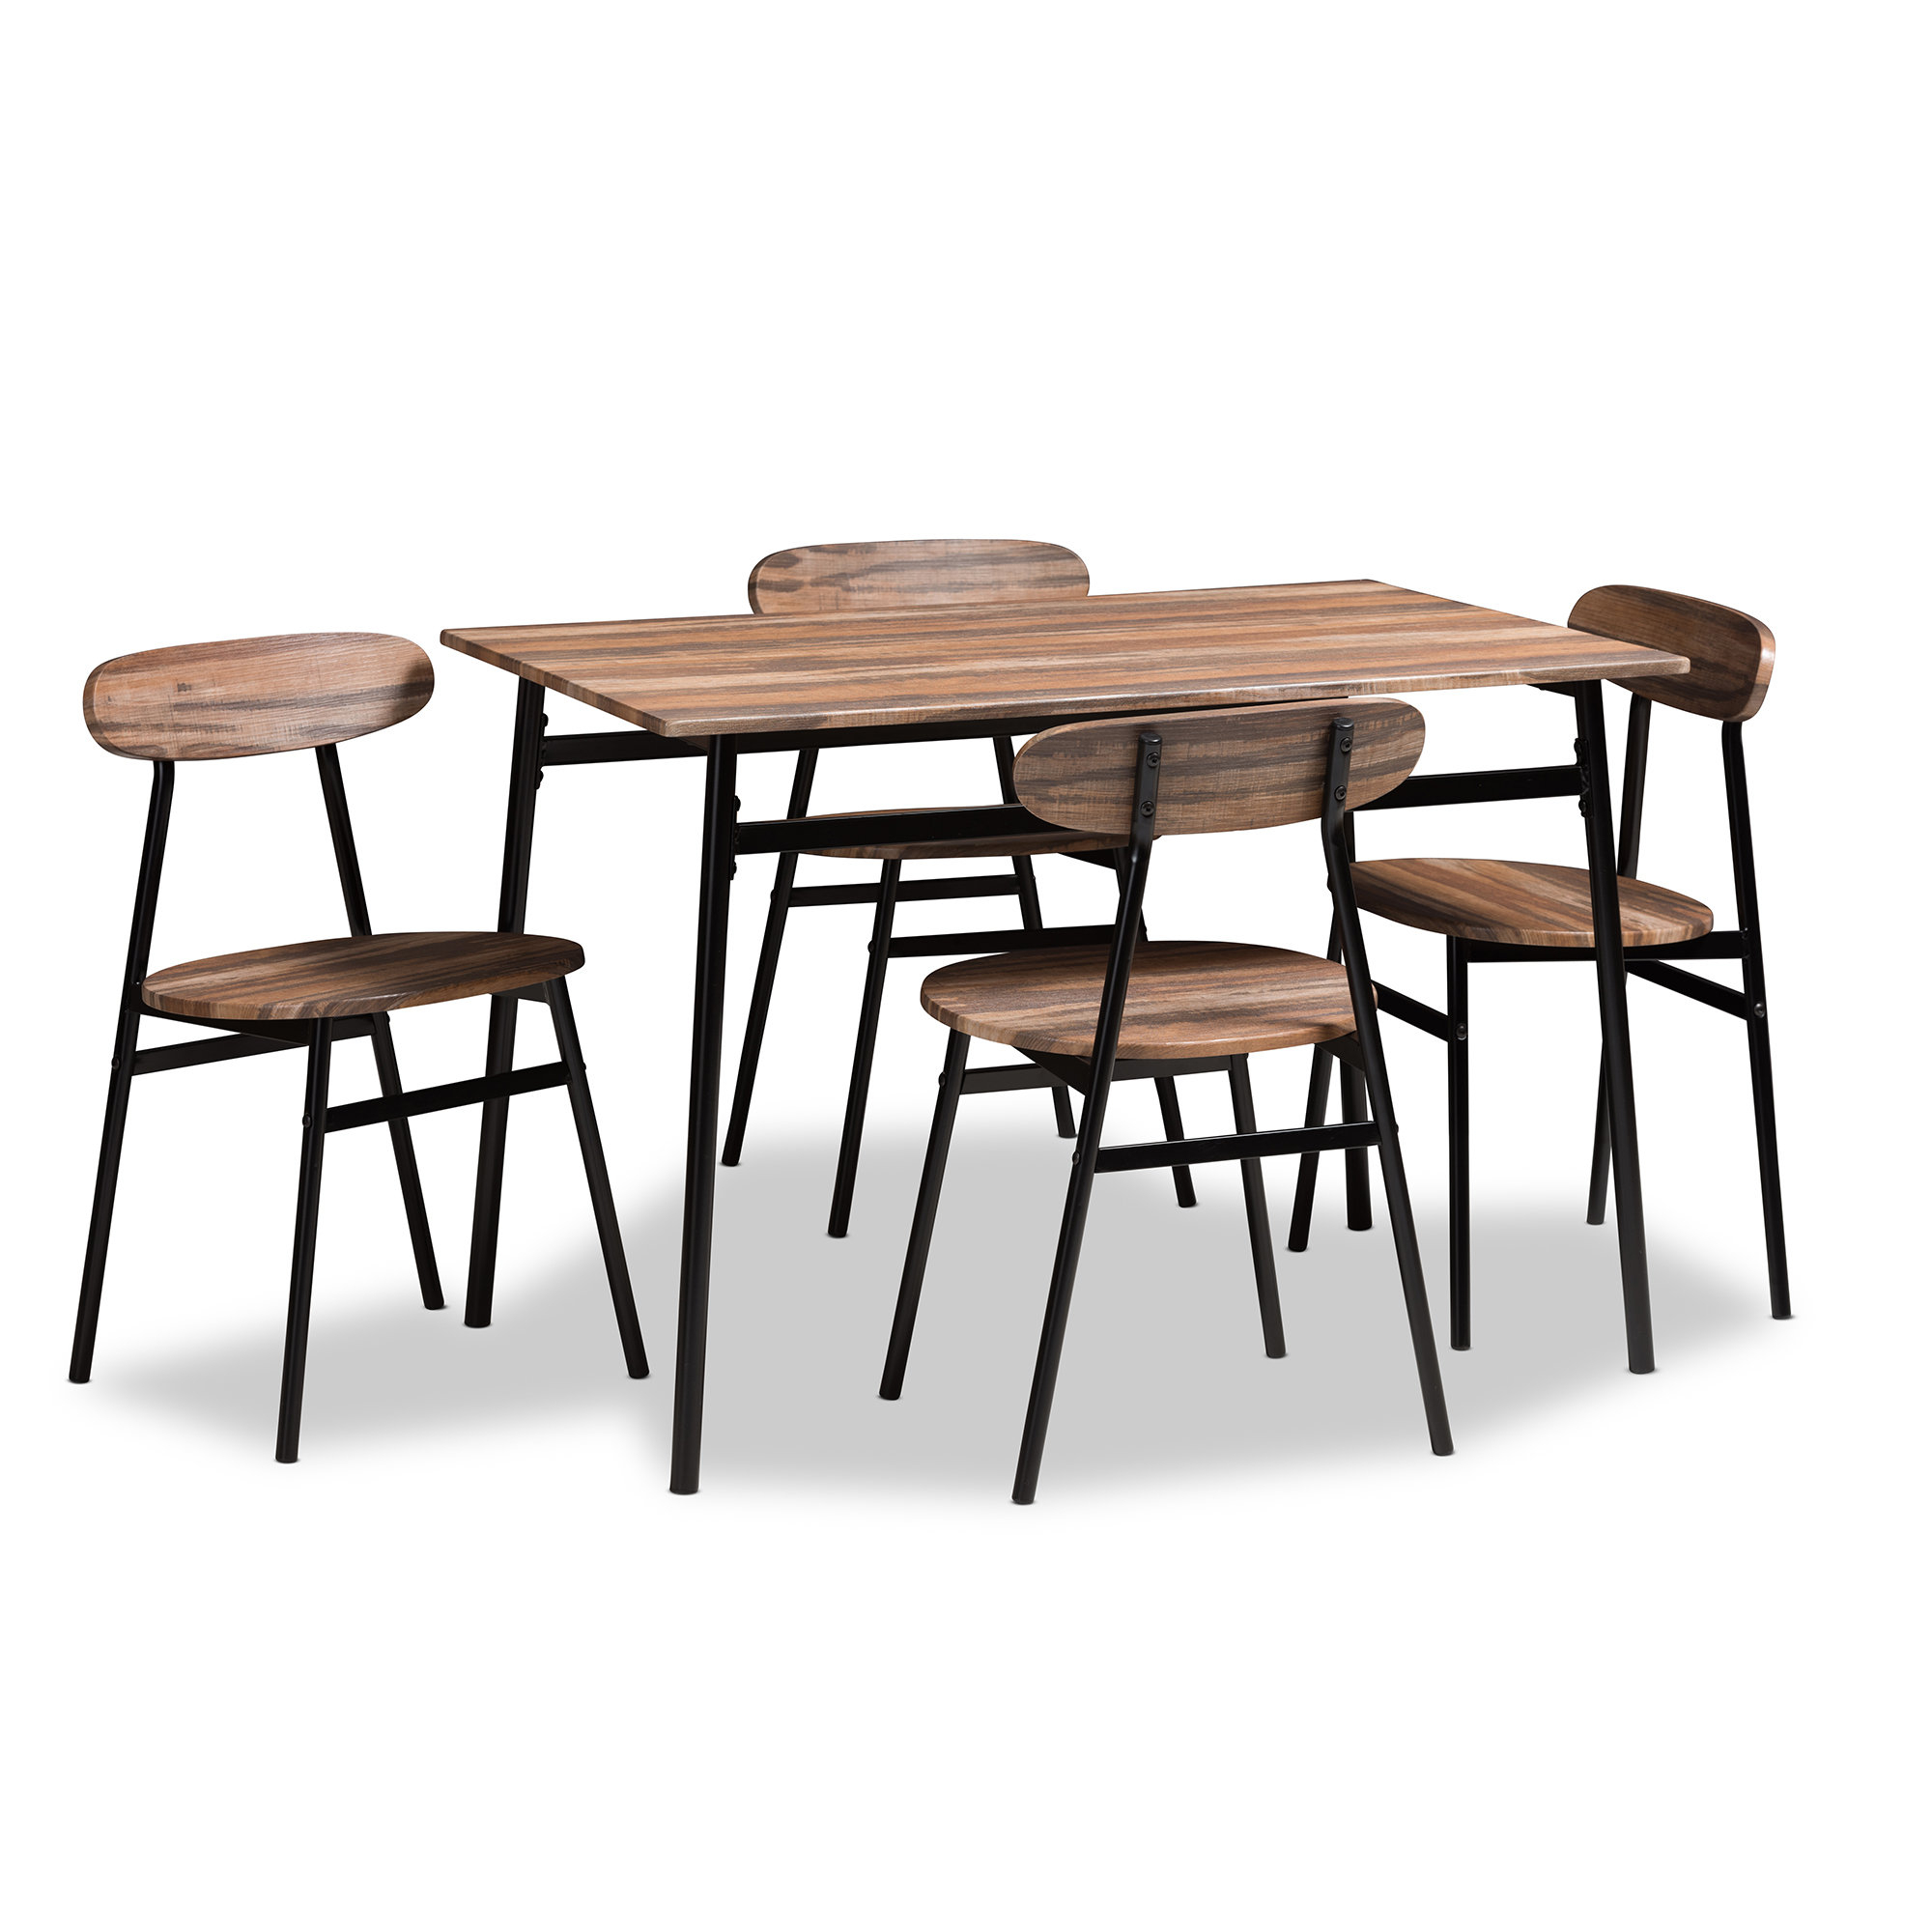 Telauges 5 Piece Dining Set Intended For Well Known Casiano 5 Piece Dining Sets (View 3 of 20)